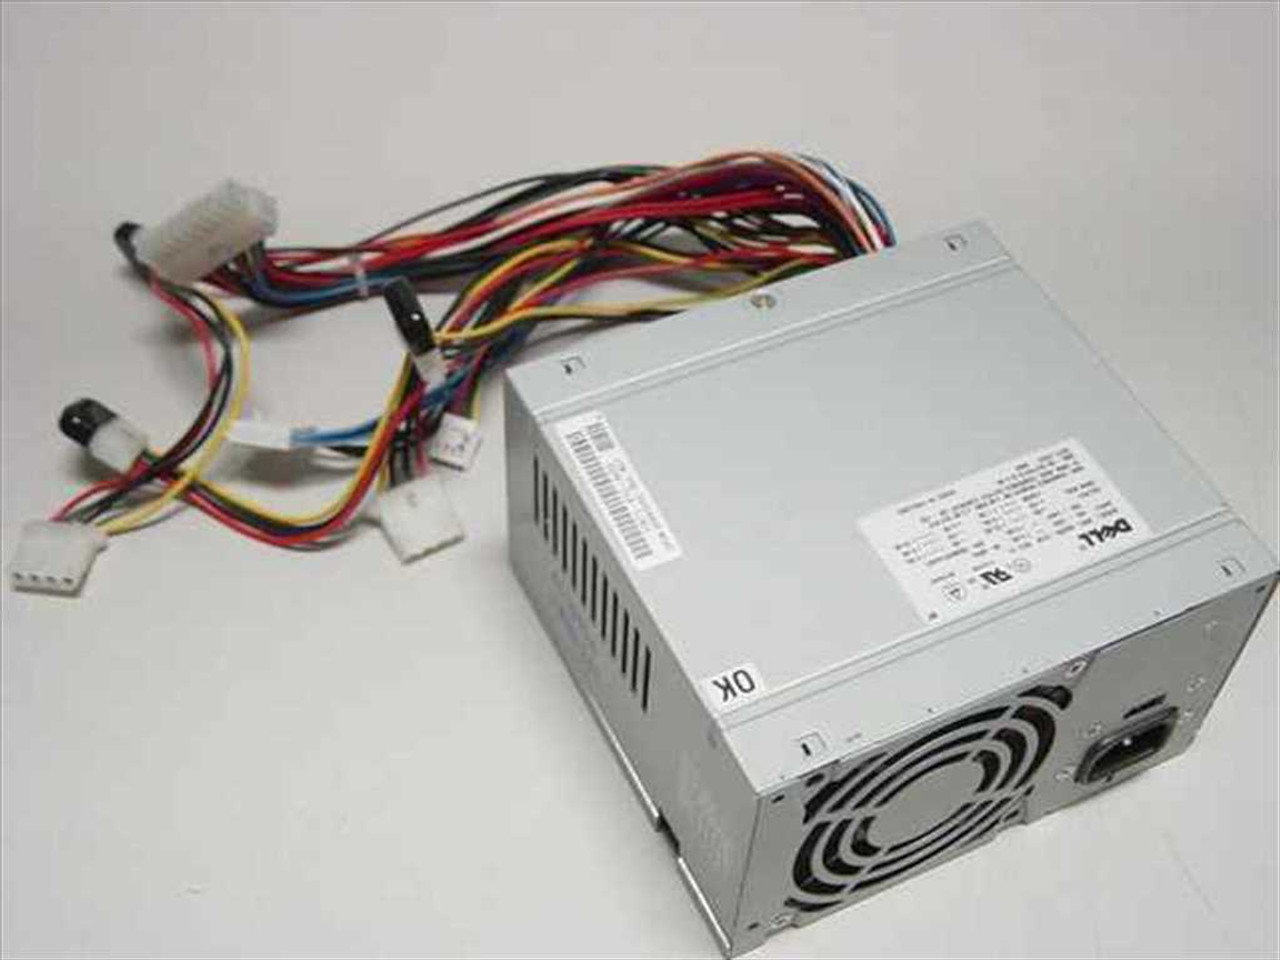 Dell Nps 200pb 73m Wiring Diagram 33 Images For Power Supply Conventional Fire Alarm 9228c 200 W Atx 118 311221490098493c